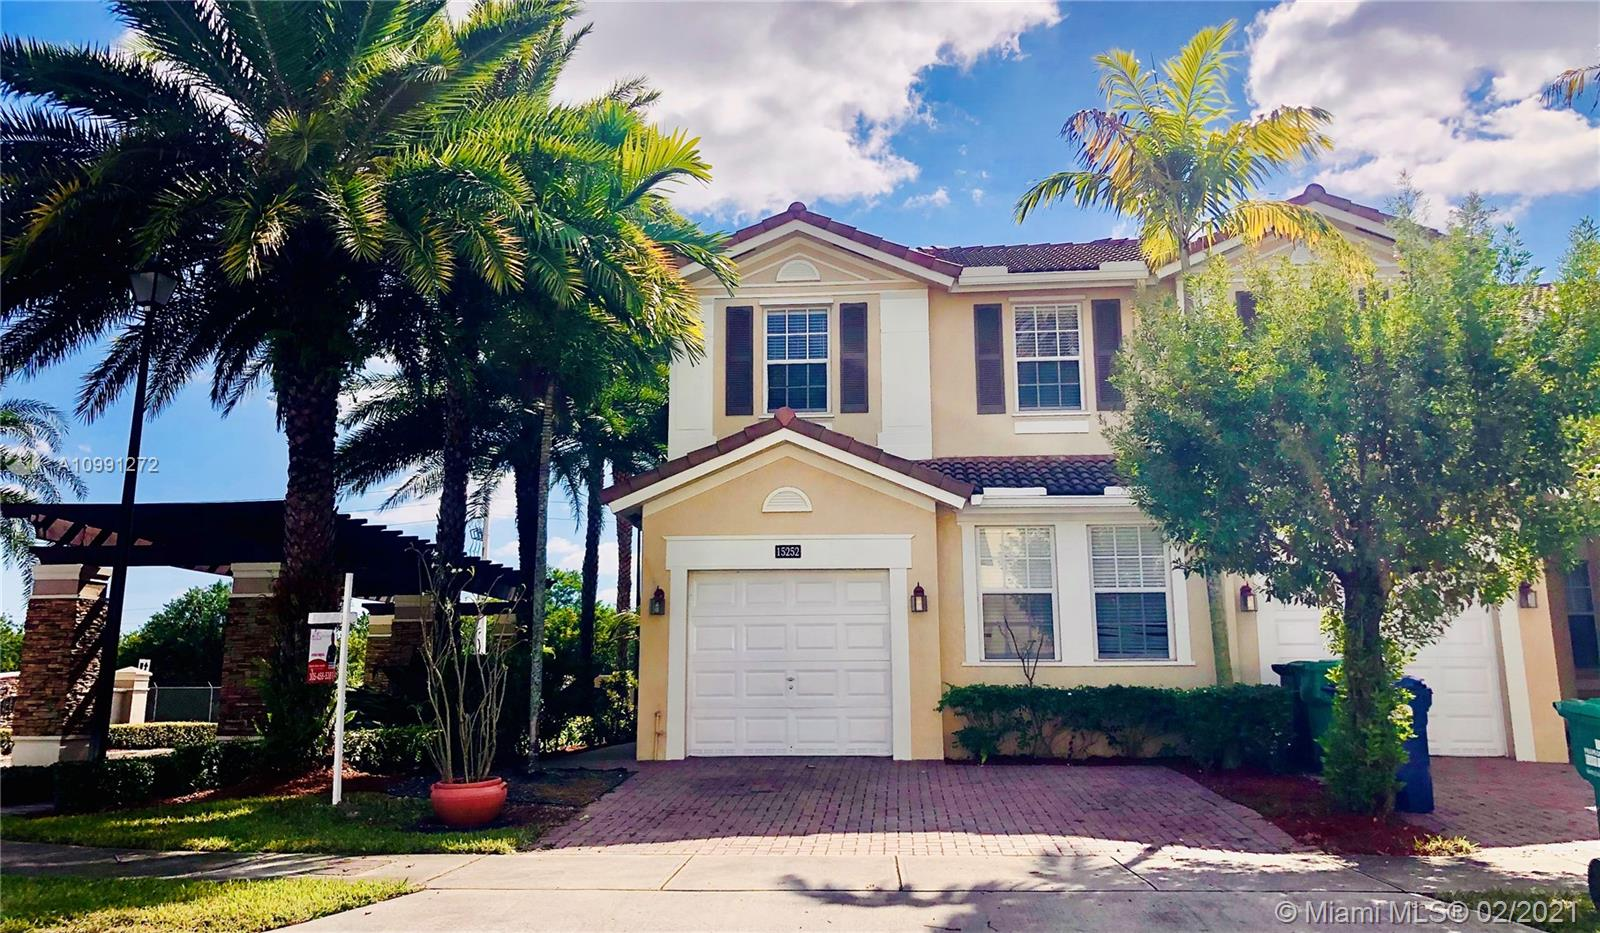 Details for 15252 119th Ter, Miami, FL 33196